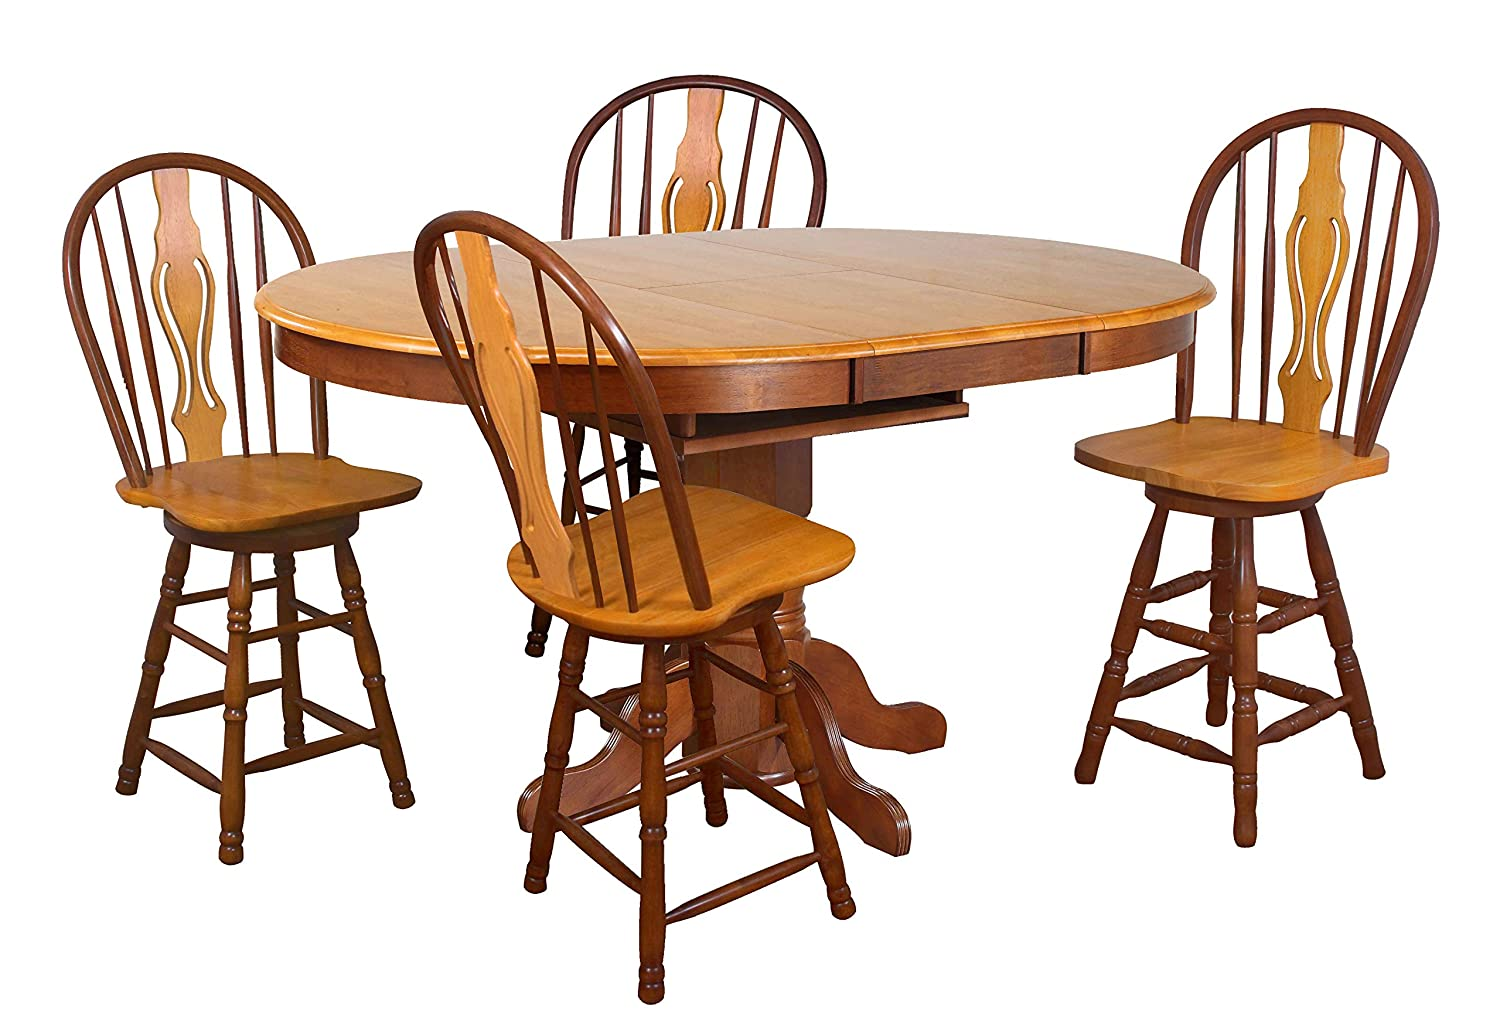 Sunset Trading Oak Selections Dining Walnut Ranking TOP4 Set Sale SALE% OFF Medium Table wi